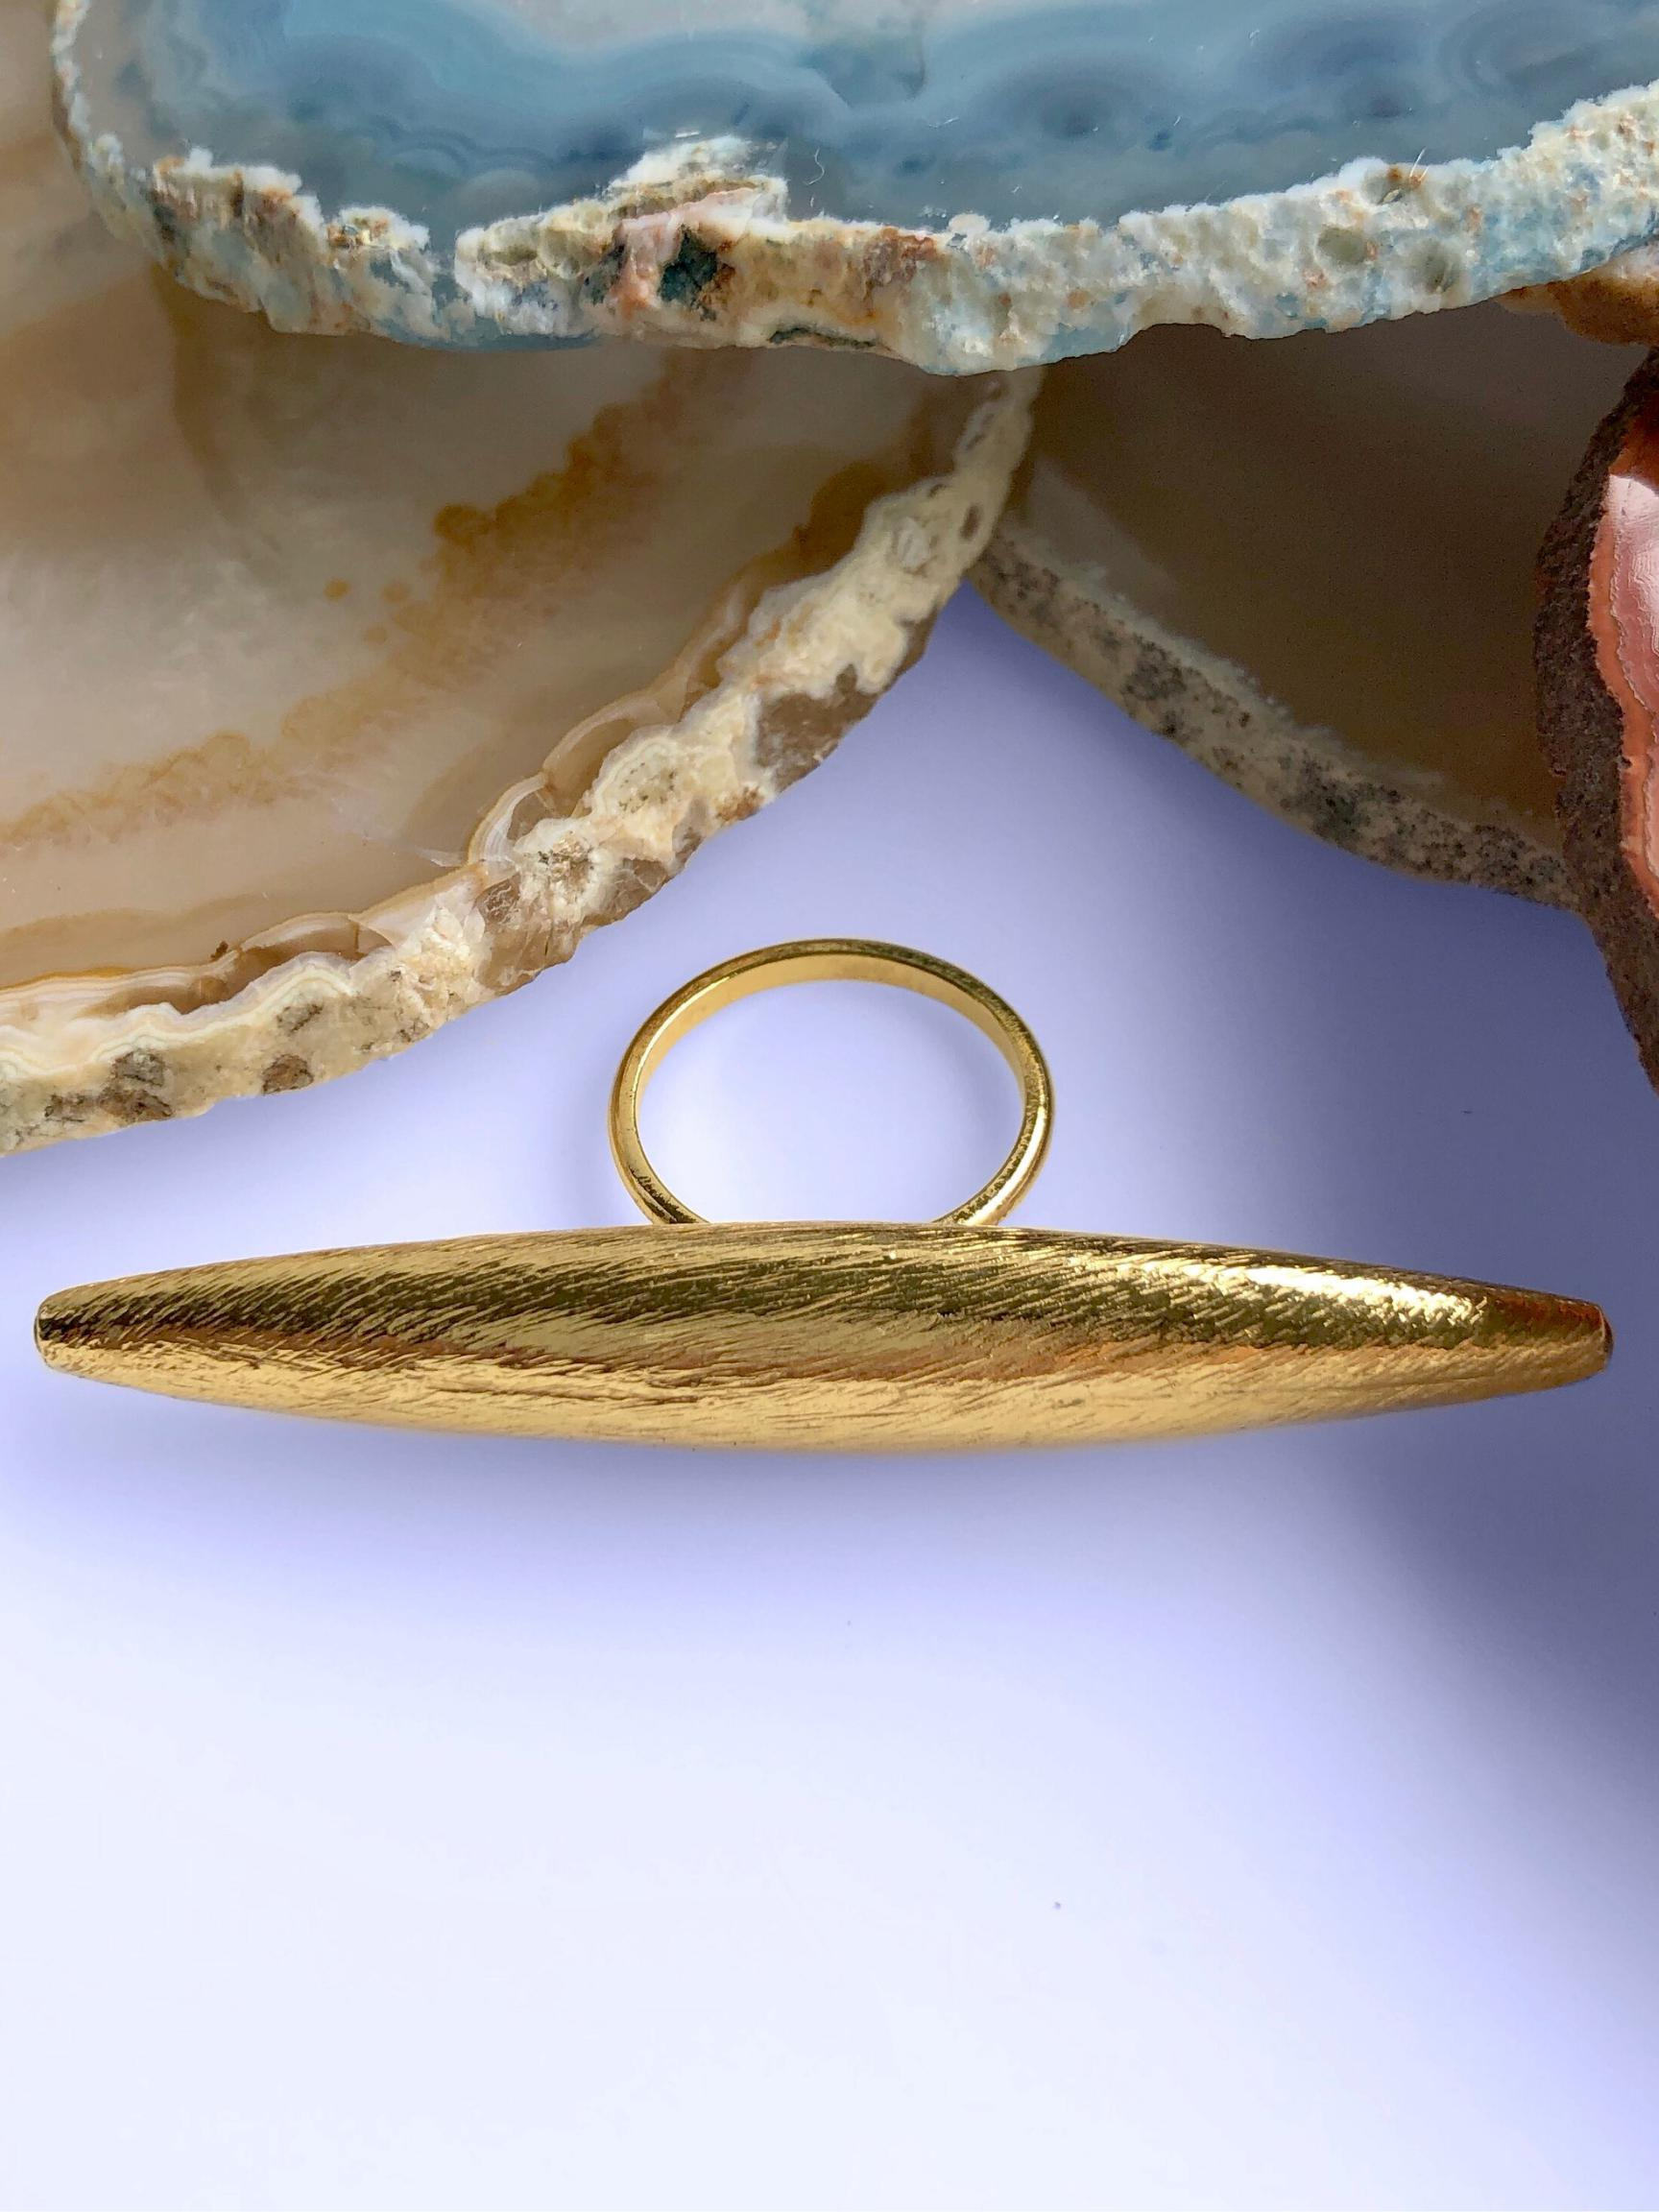 Zeppelin Large Gold Ring-Womens rings-JAREDJAMIN Jewelry Online-JARED JAMIN